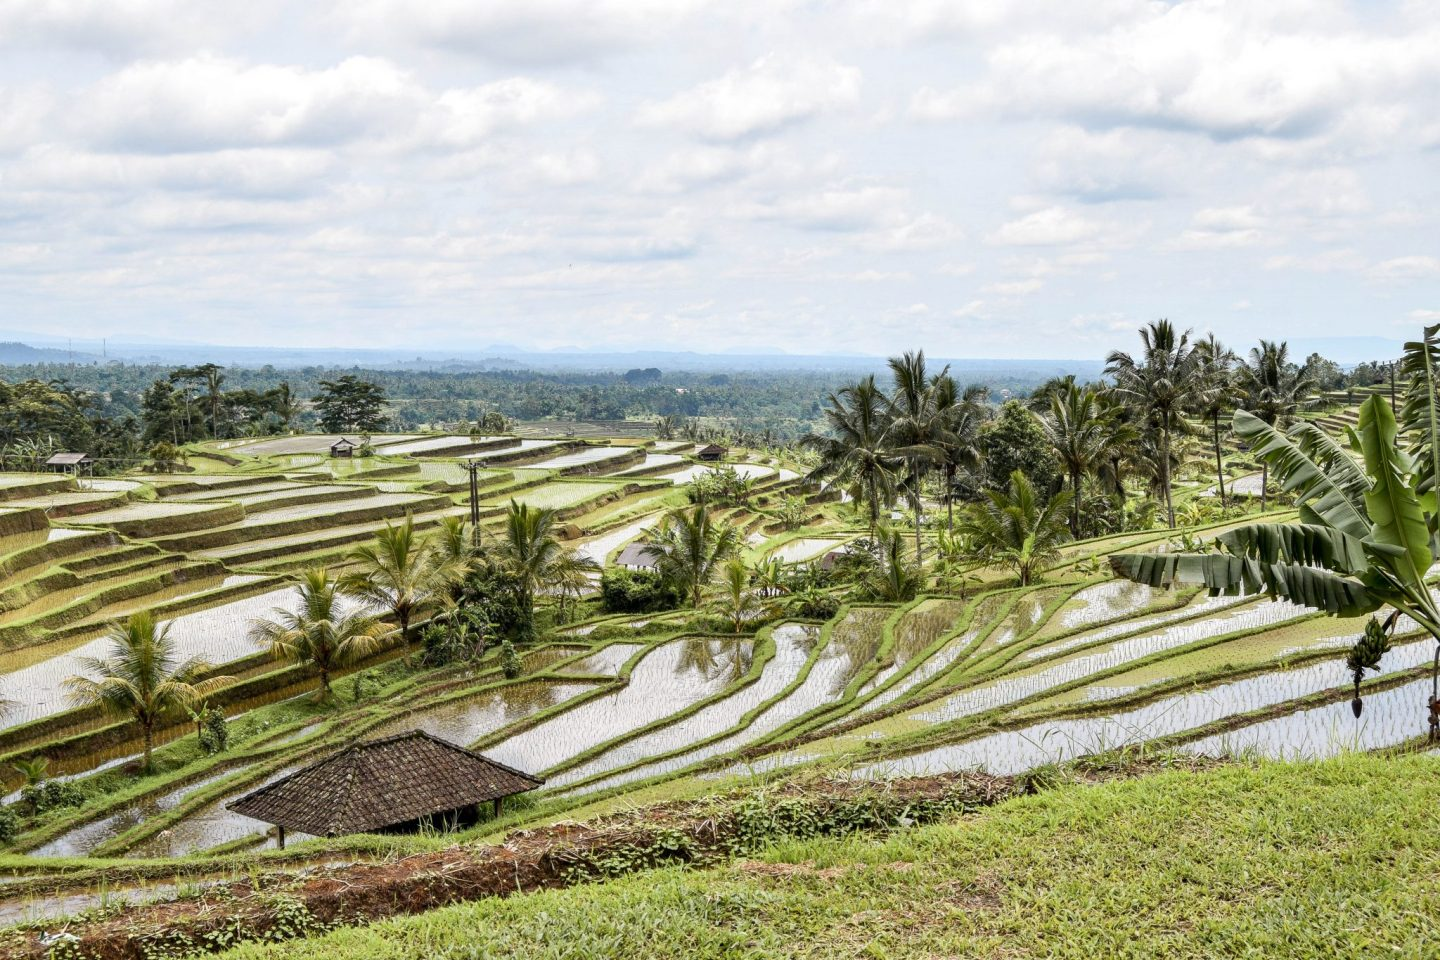 Wanderers & Warriors - Charlie & Lauren UK Travel Couple - Jatiluwih Rice Terrace – All You Need To Know - Jatiluwih Rice Terrace Entrance Fee - Jatiluwih Rice Fields